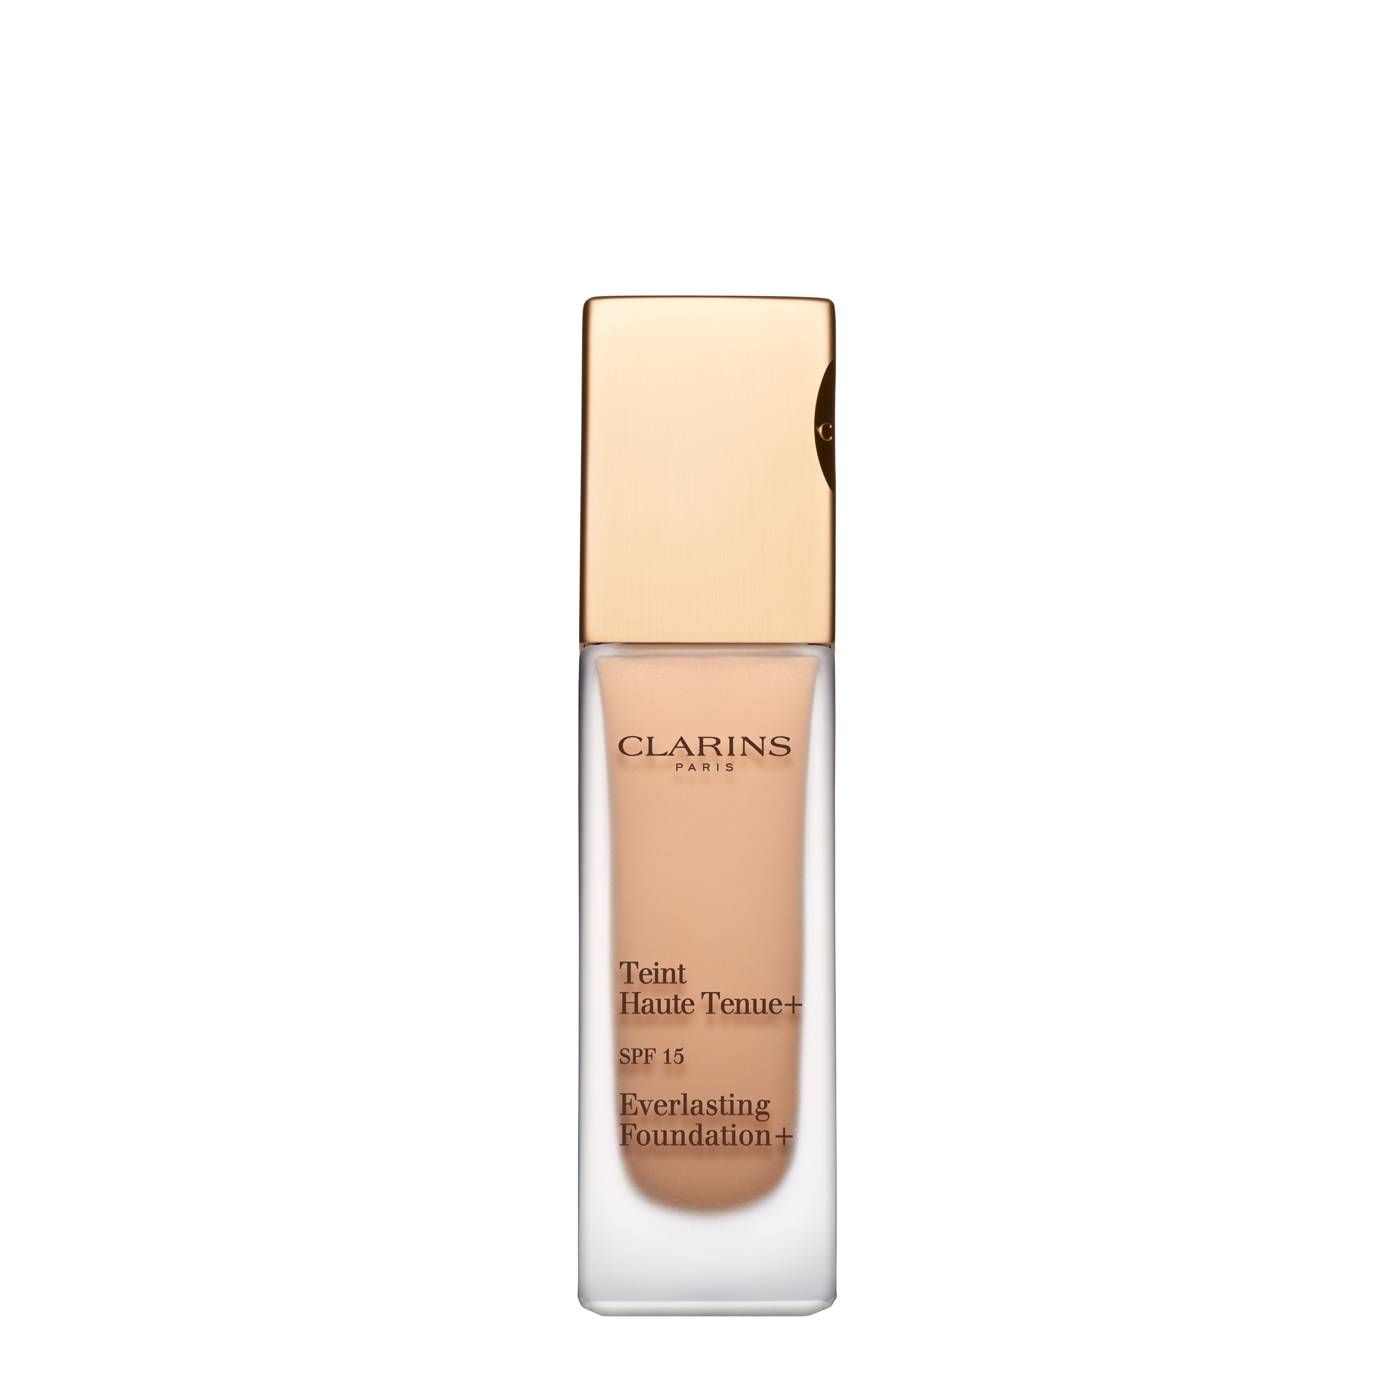 Clarins Everlasting Foundation+ SPF 15 in 105 Nude 30 ml